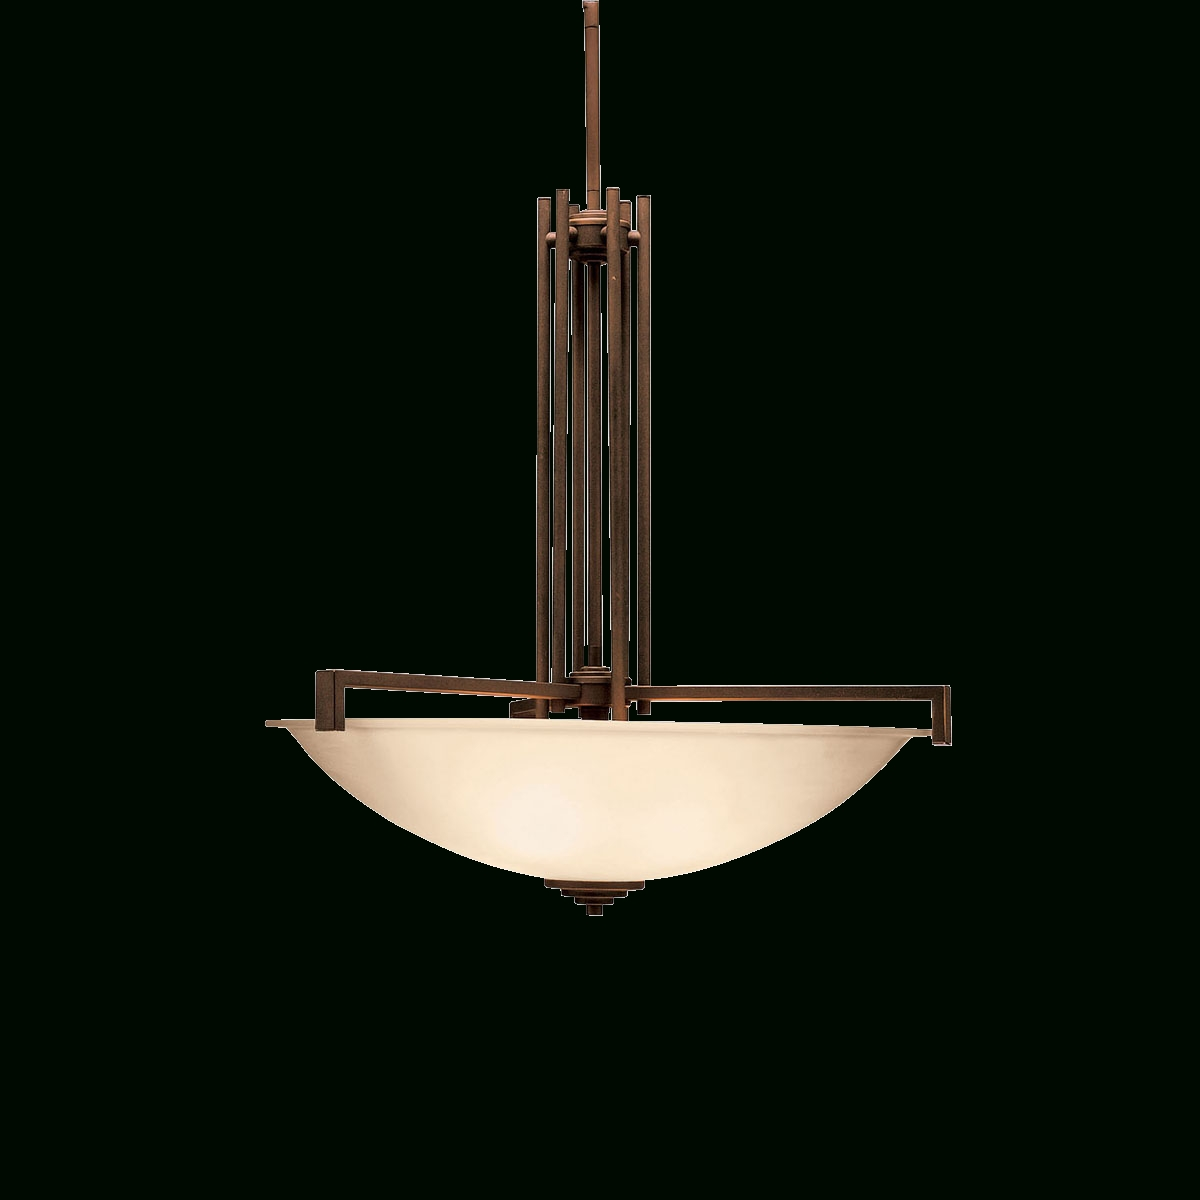 Contemporary 4 Light Inverted Pendant (3299Ni) Brushed Nickel intended for Inverted Pendant Lighting (Image 3 of 15)